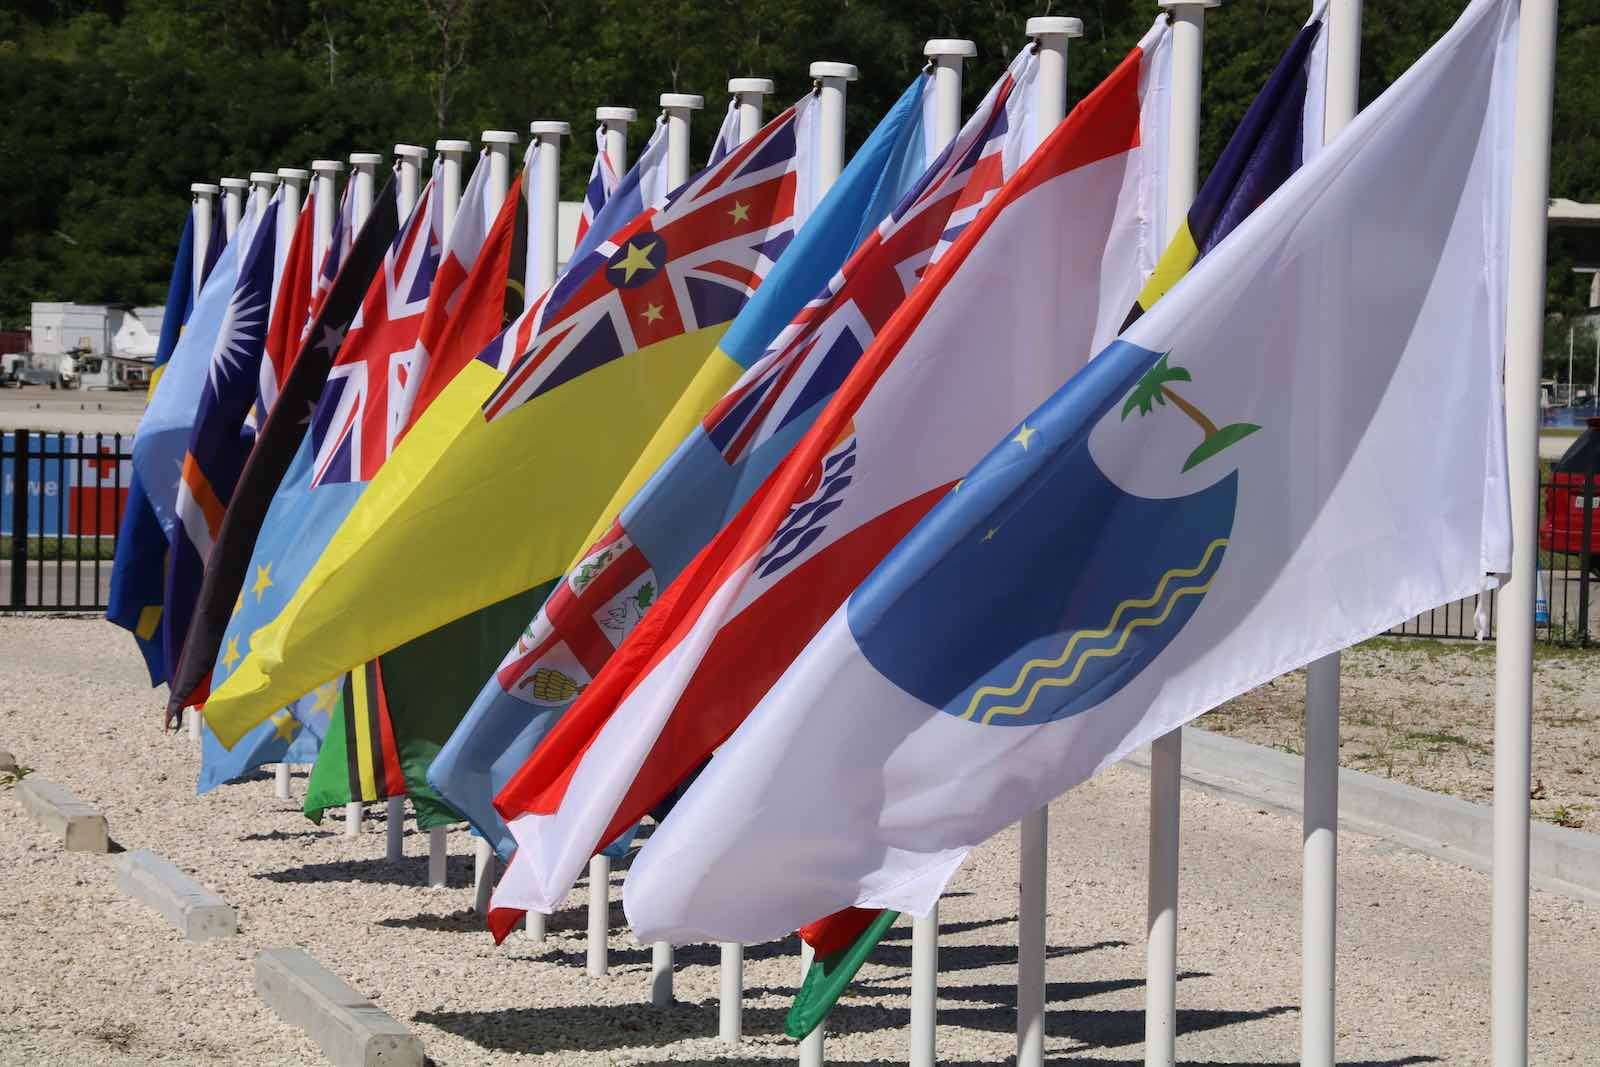 Banding together in a regional body such the Pacific Islands Forum is one solution for small states buffeted by great power competition (Mike Leyral/AFP via Getty Images)